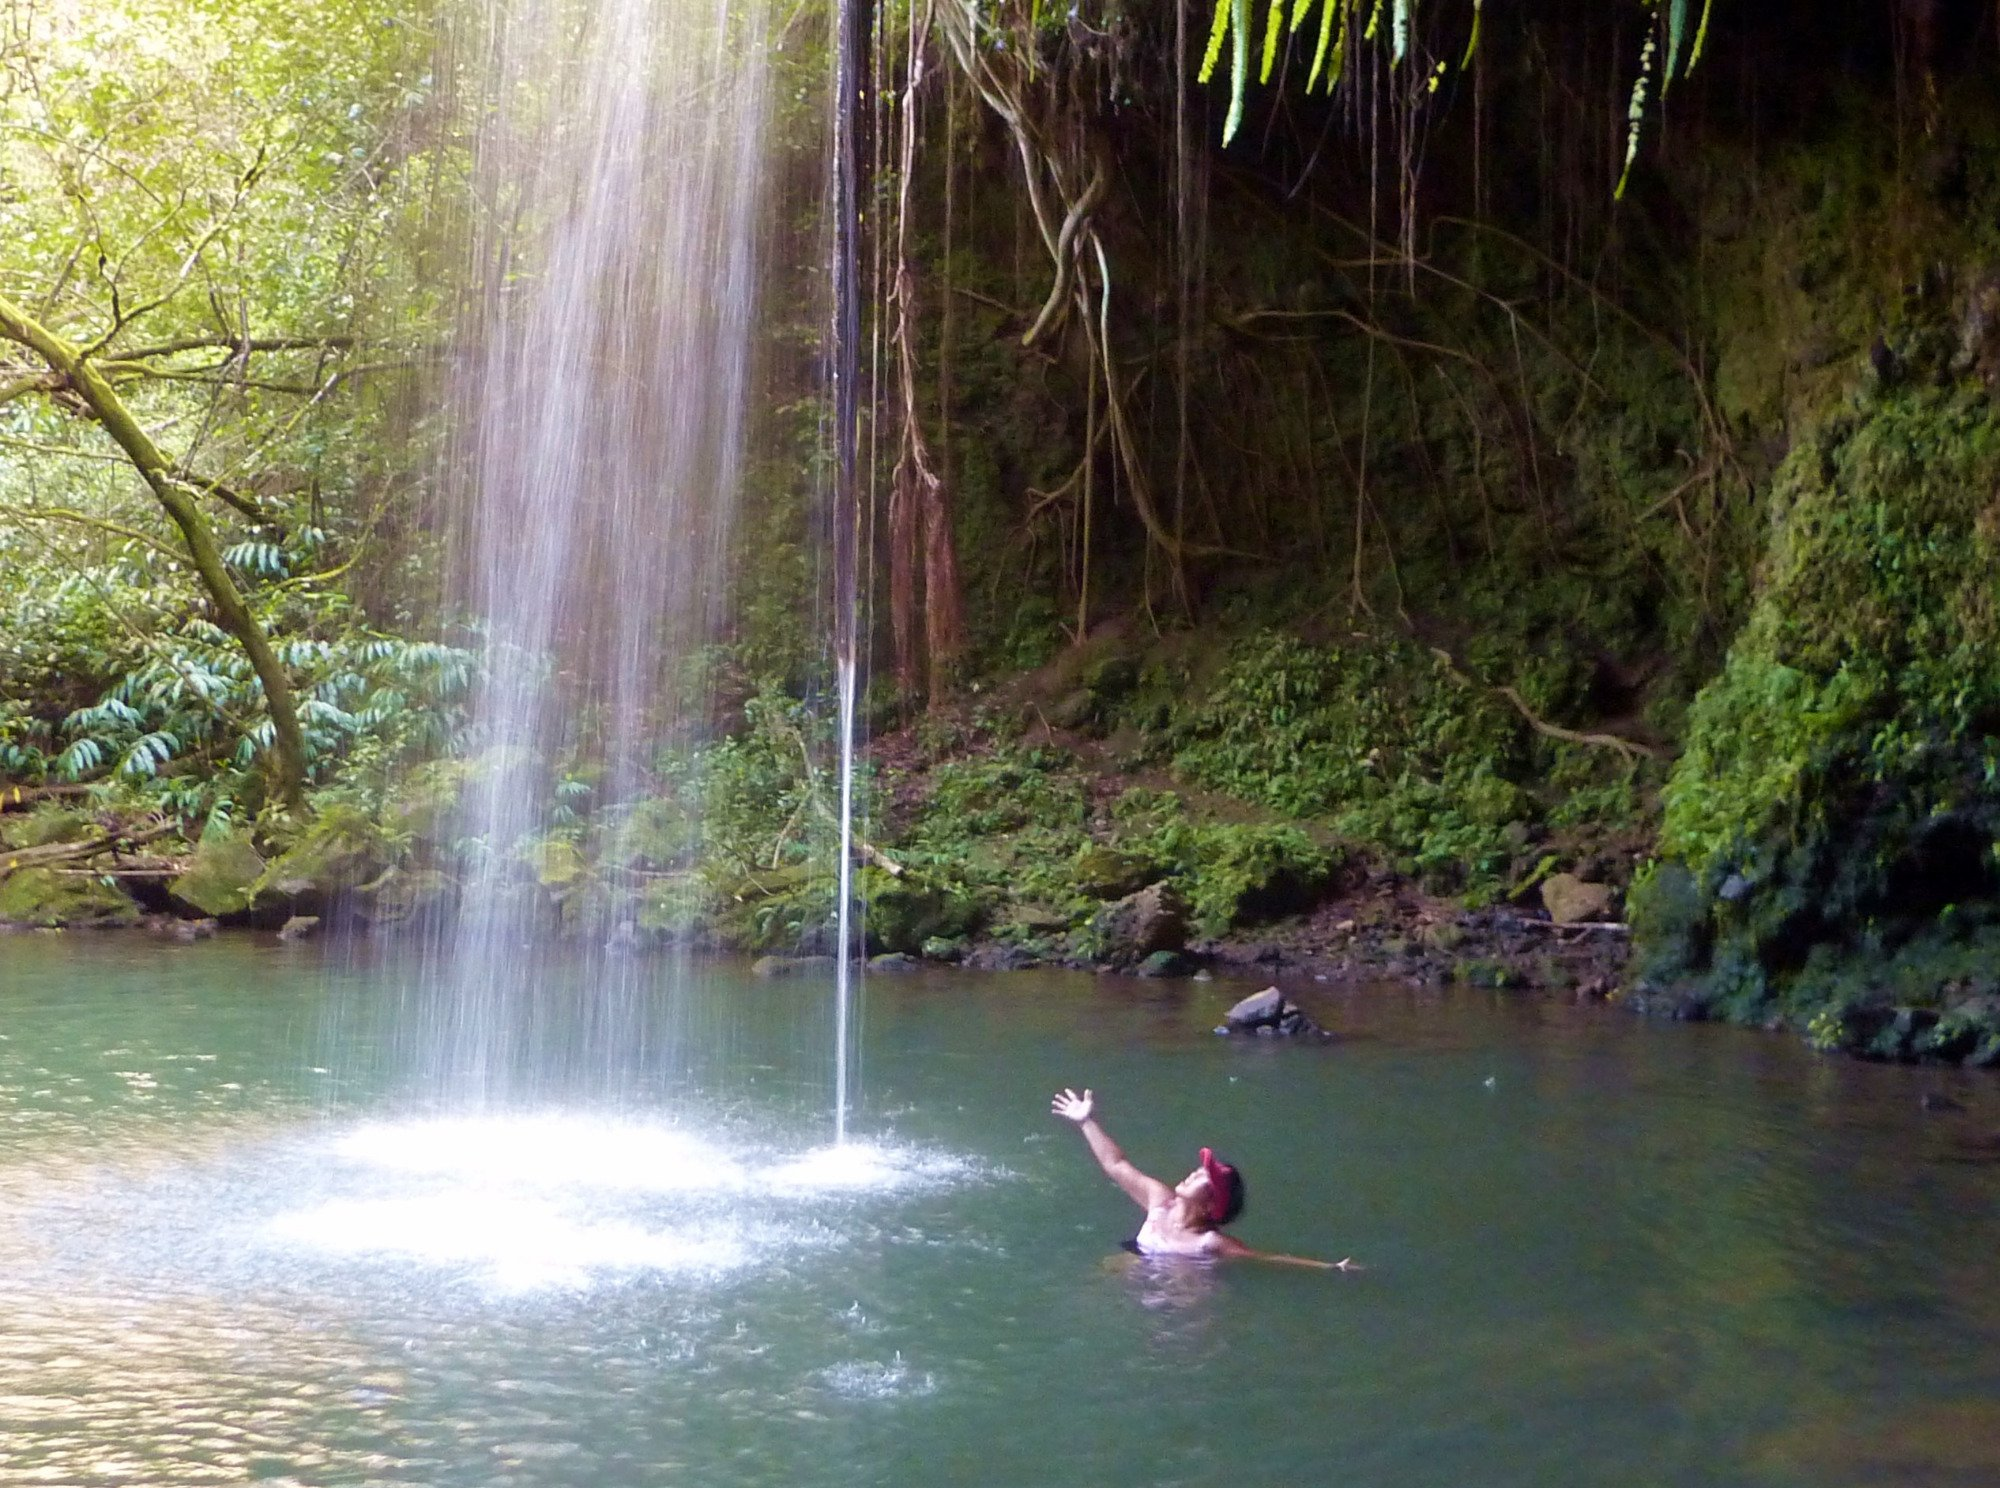 Wife is swimming under the Twin Falls, Maui.  (Don't stand under the falls, falling objects!)